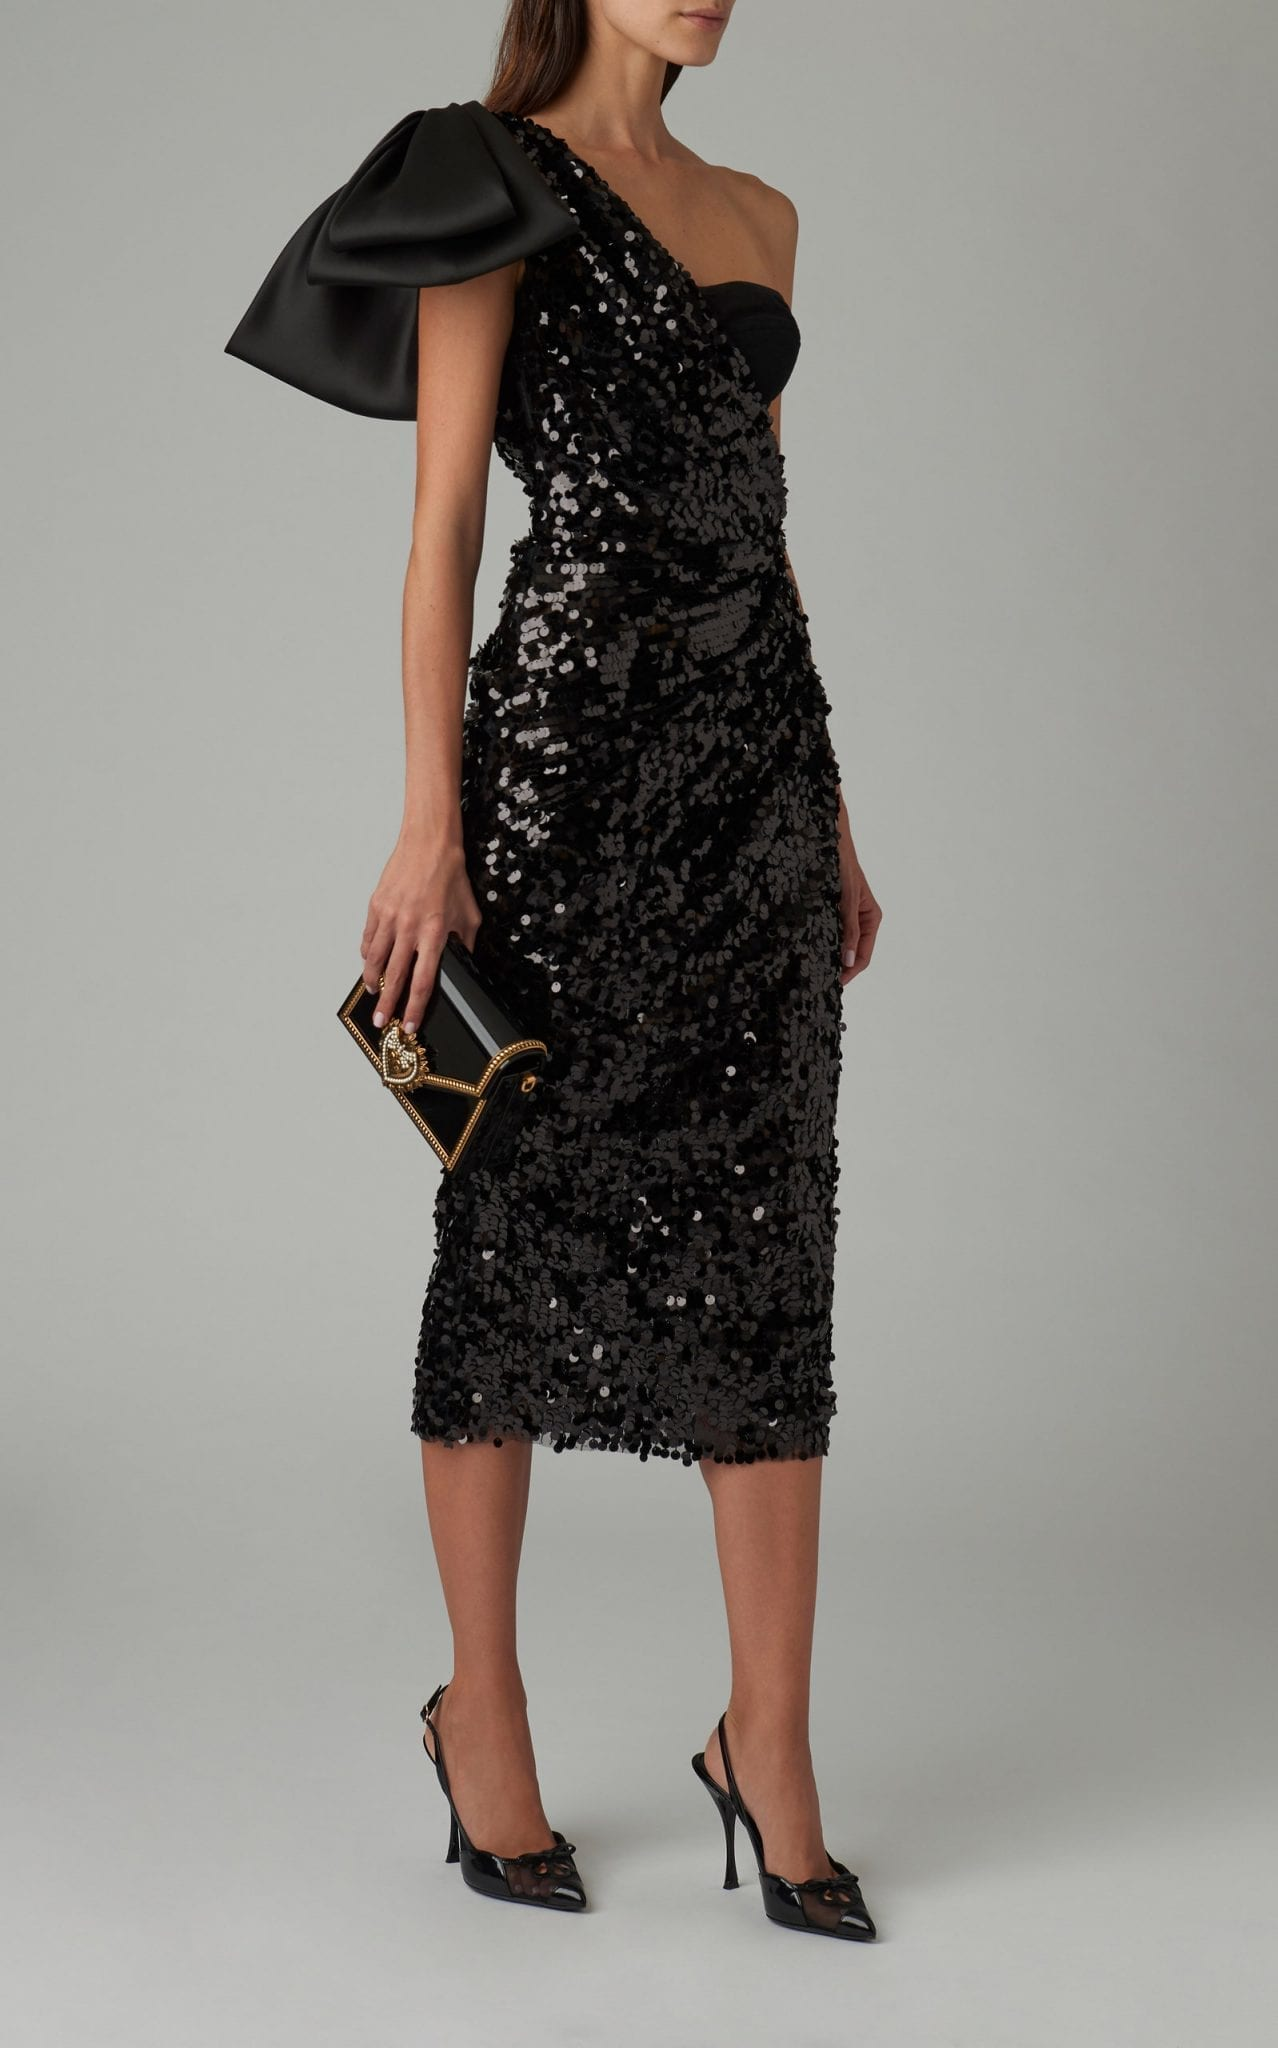 DOLCE & GABBANA Bow-Detailed One-Shoulder Sequined Midi Dress